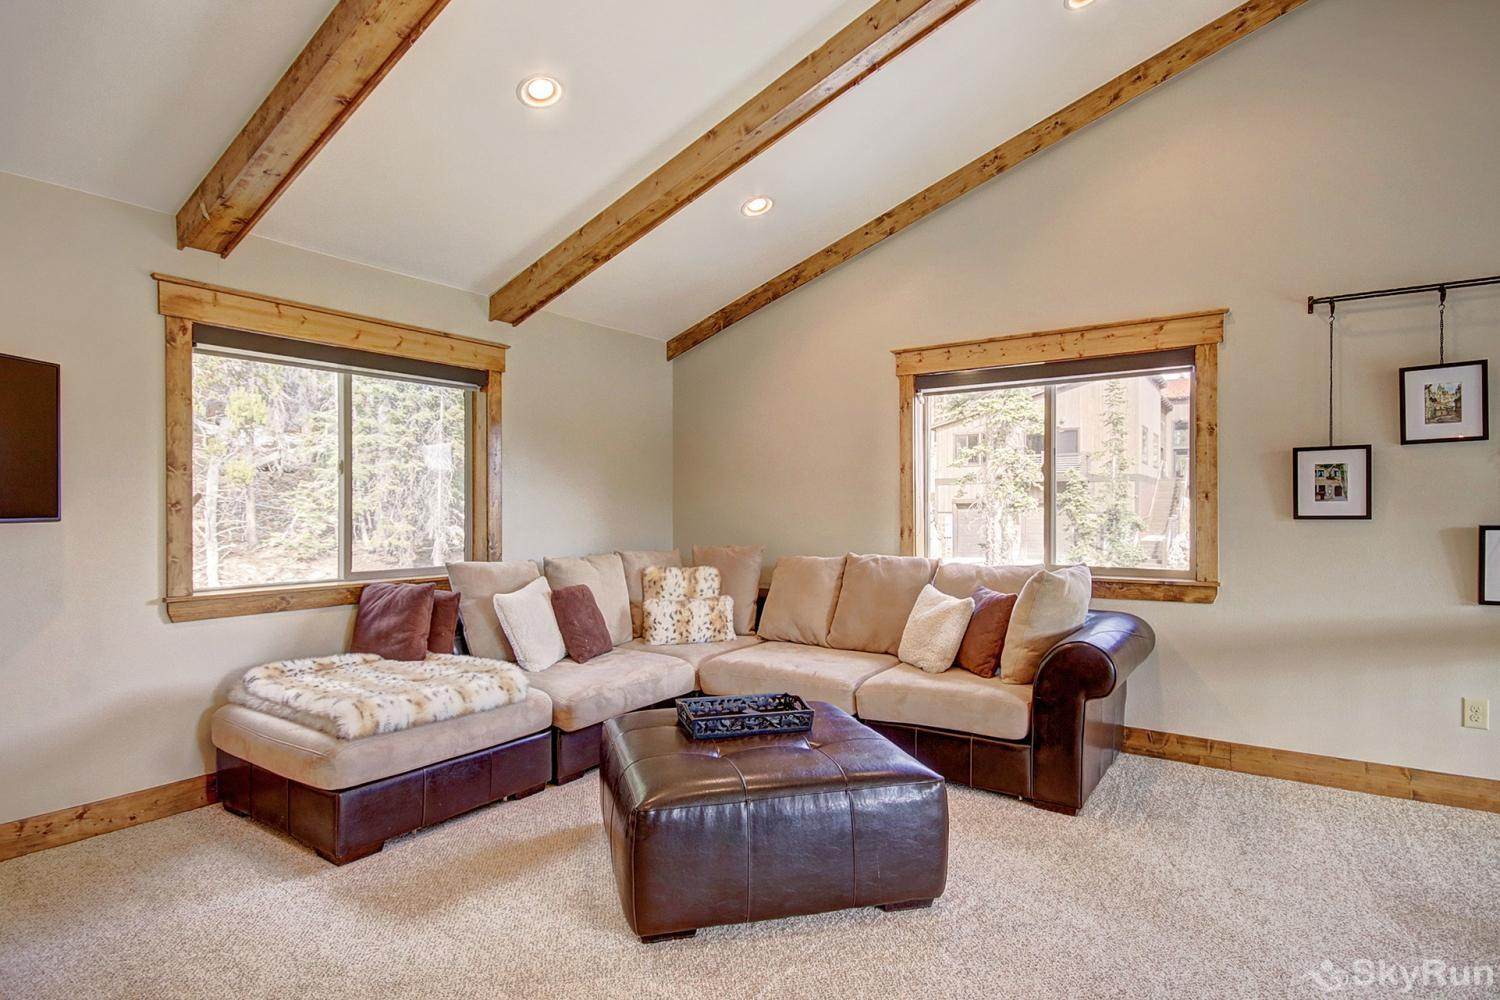 Mountain View Lodge Wrap around couch in upper level loft